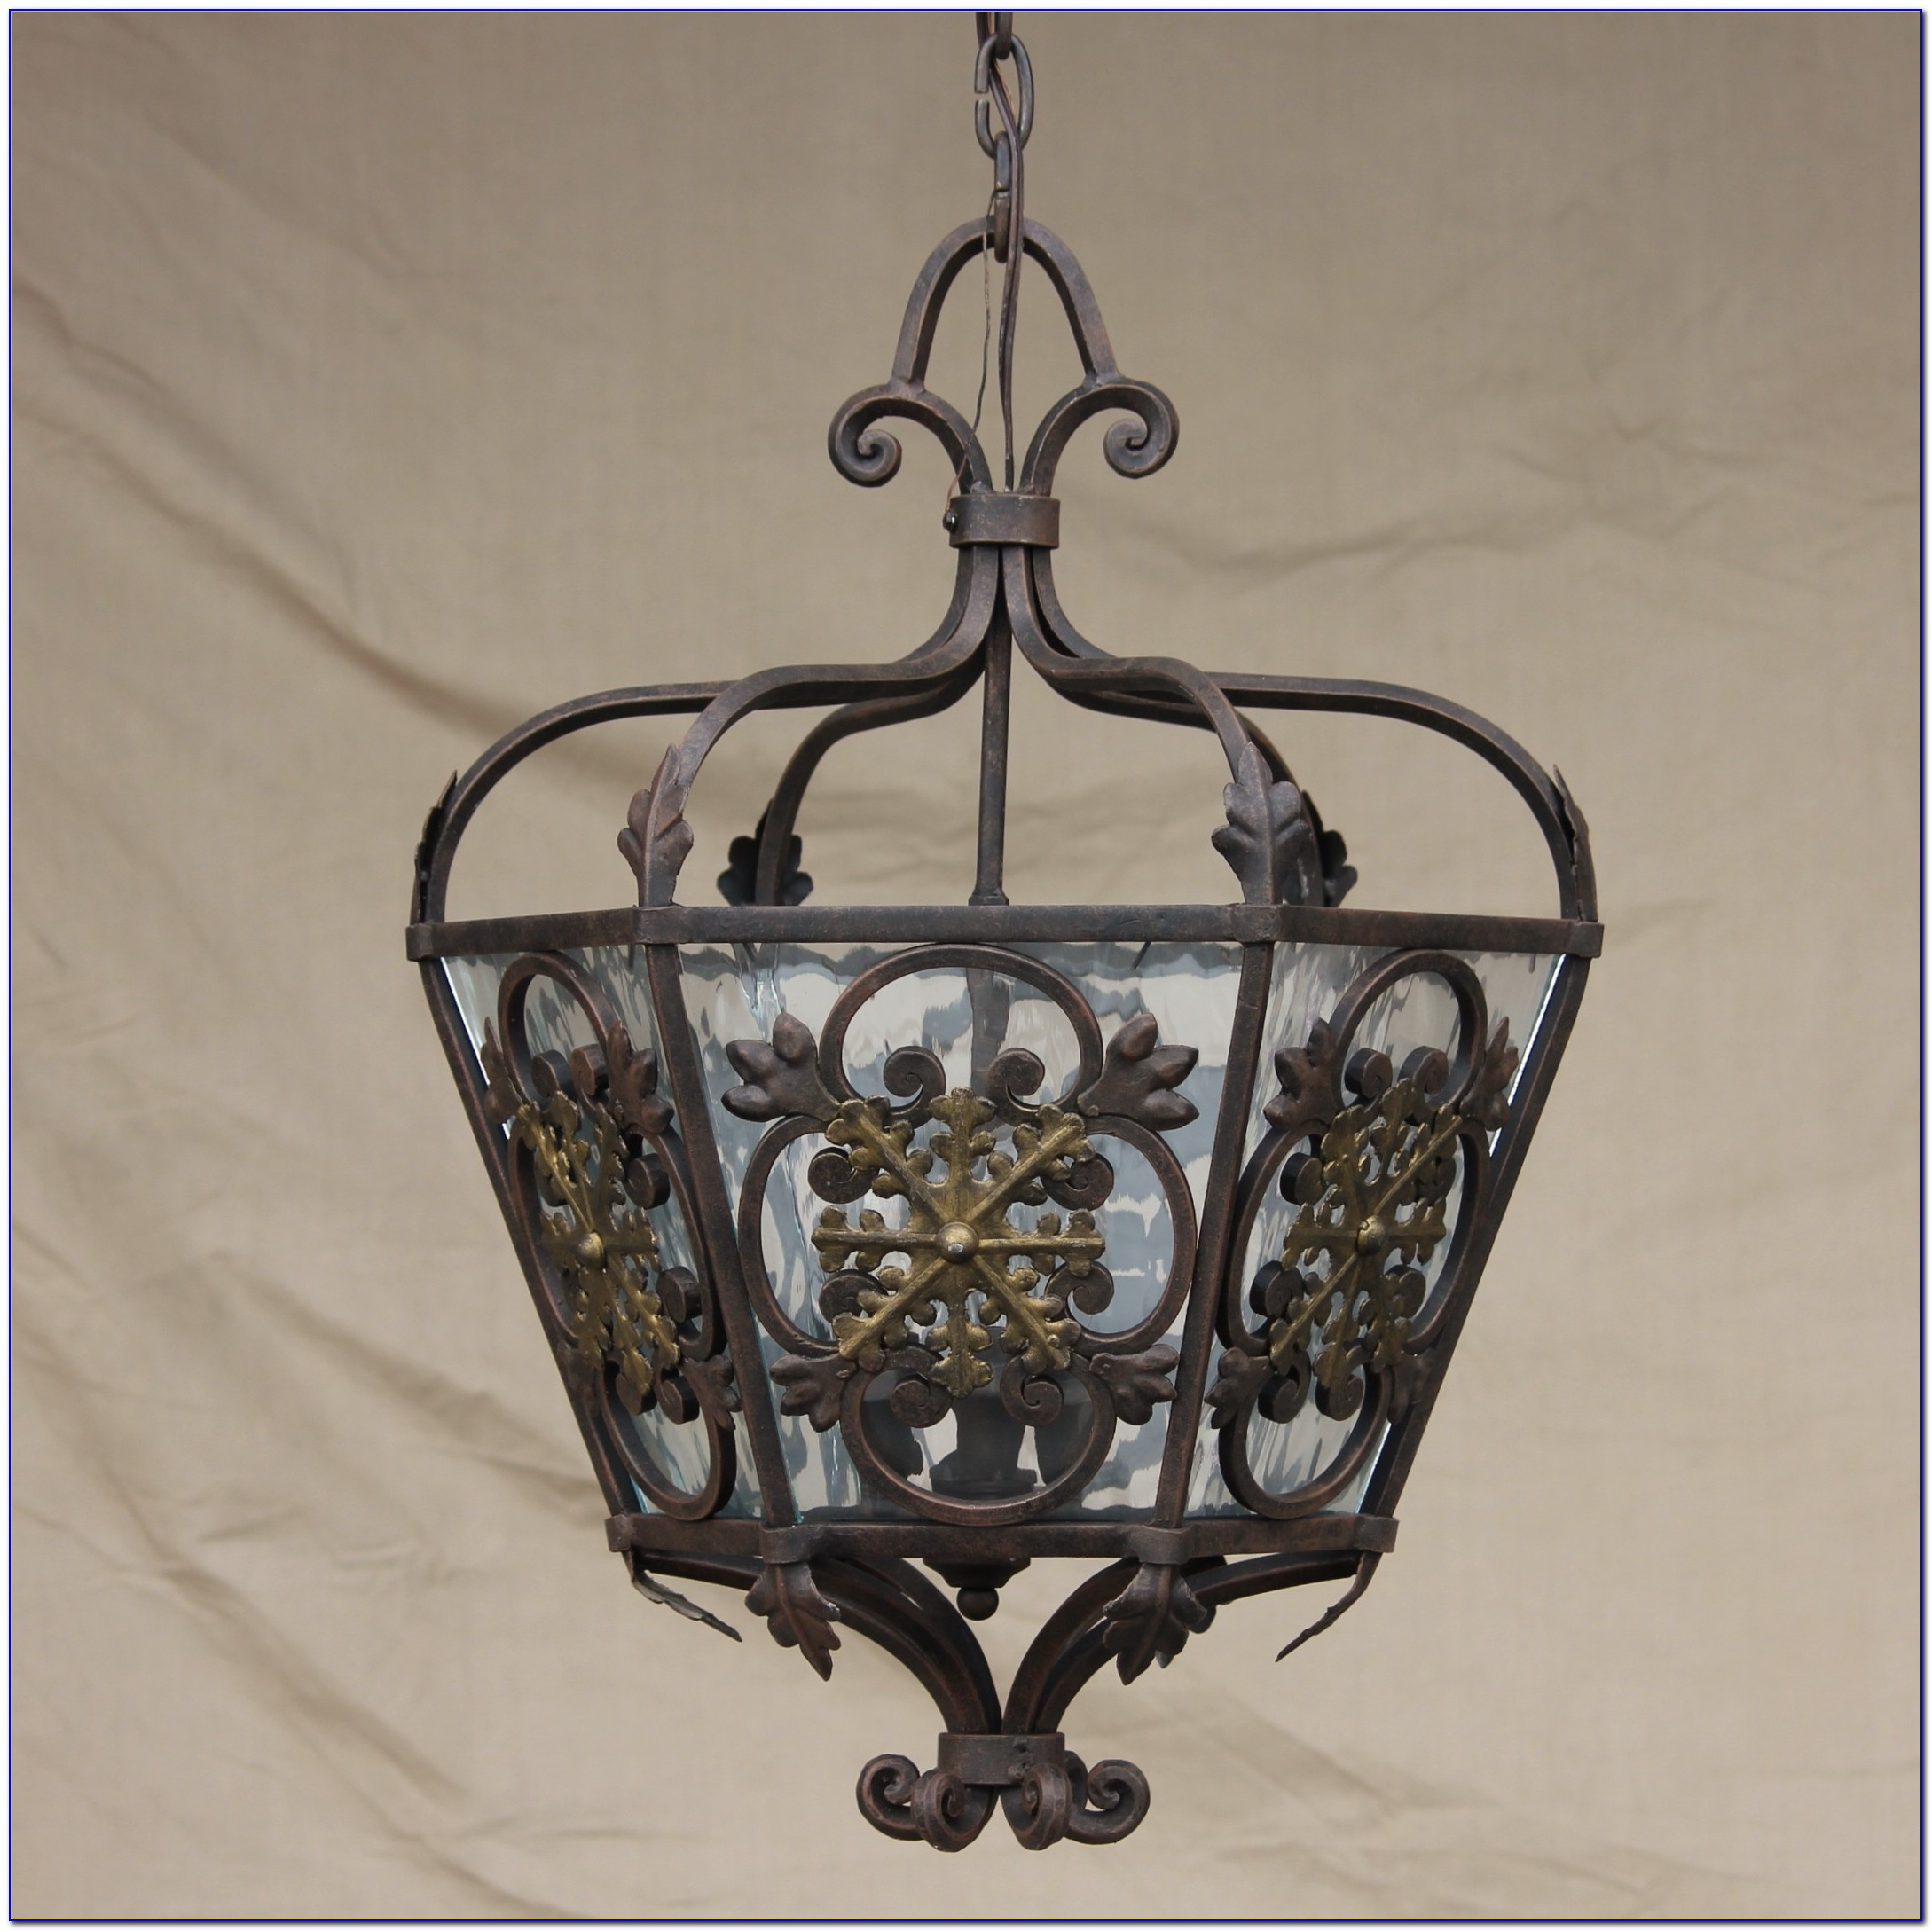 Wrought Iron Ceiling Fixture